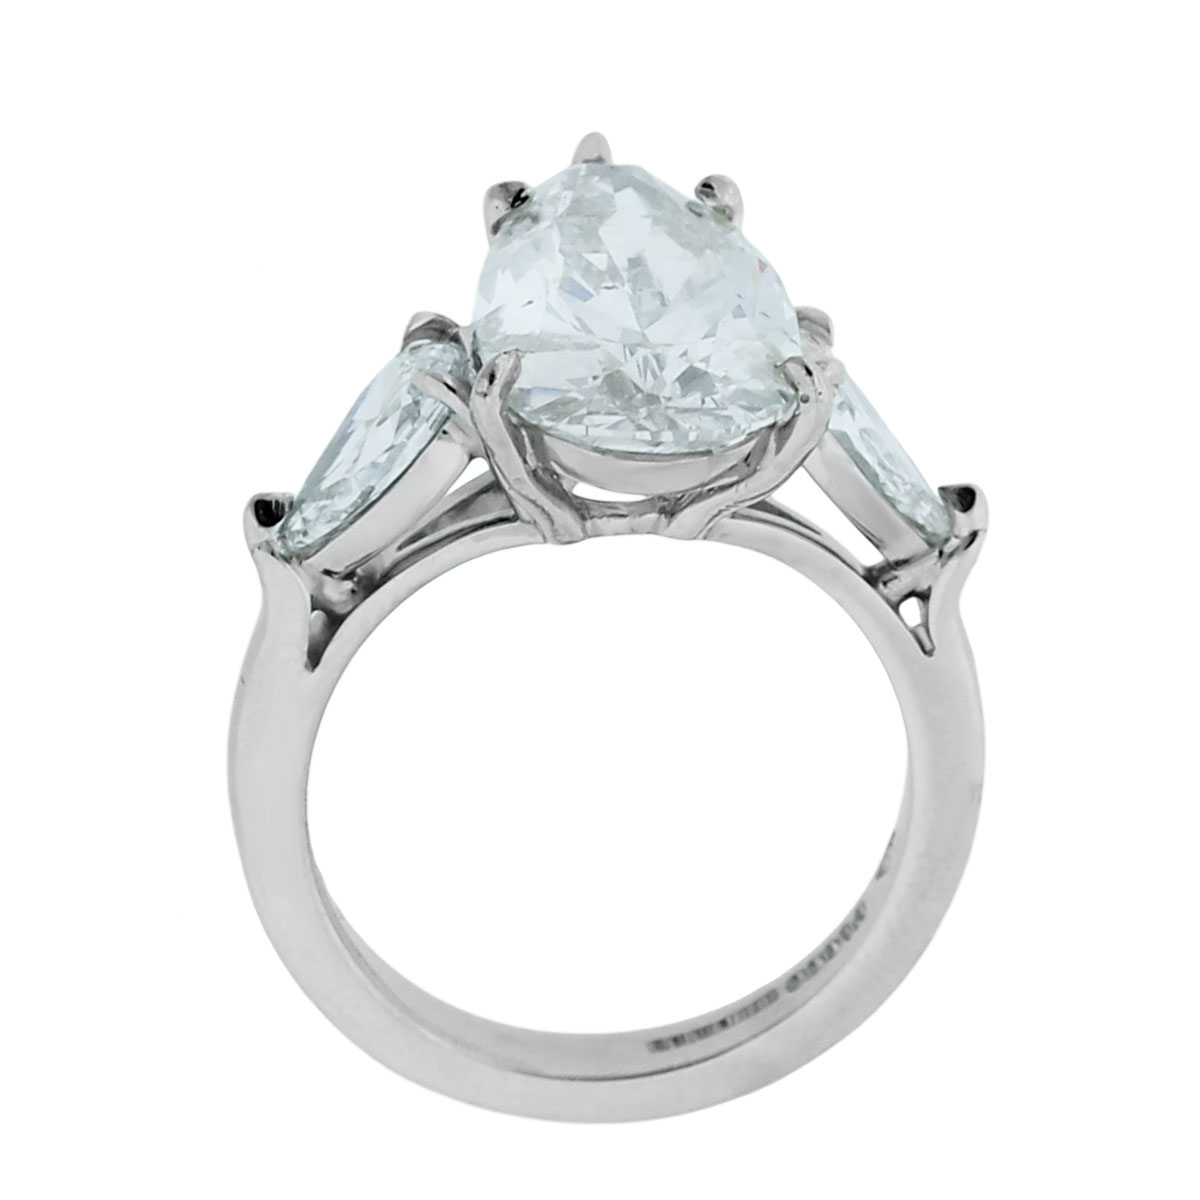 Platinum 5.01ct Pear Shape Diamond Ring